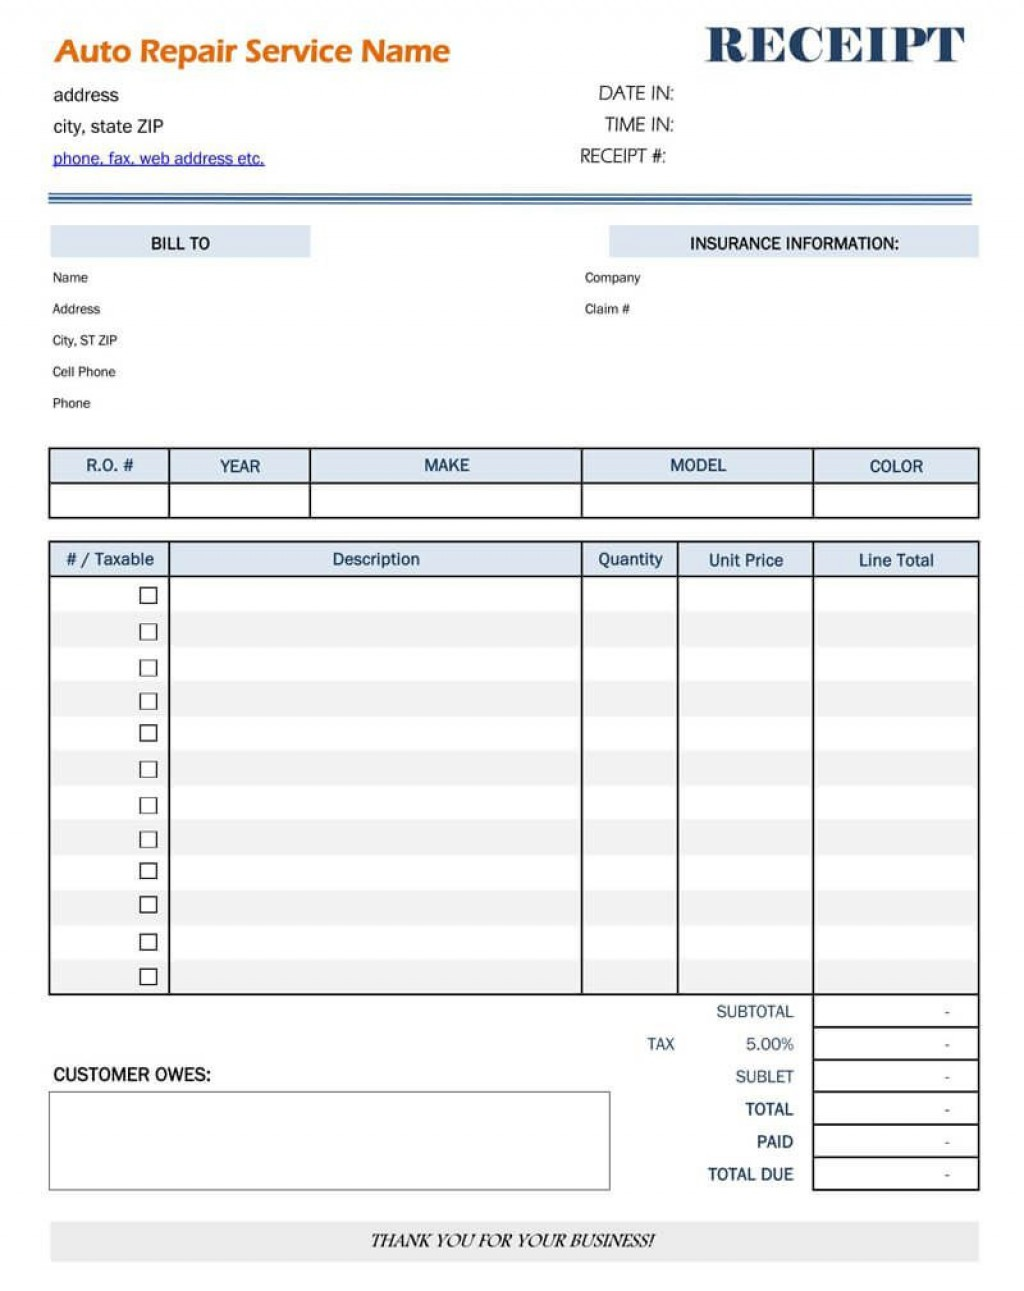 004 Remarkable Microsoft Excel Auto Repair Invoice Template High Resolution Large